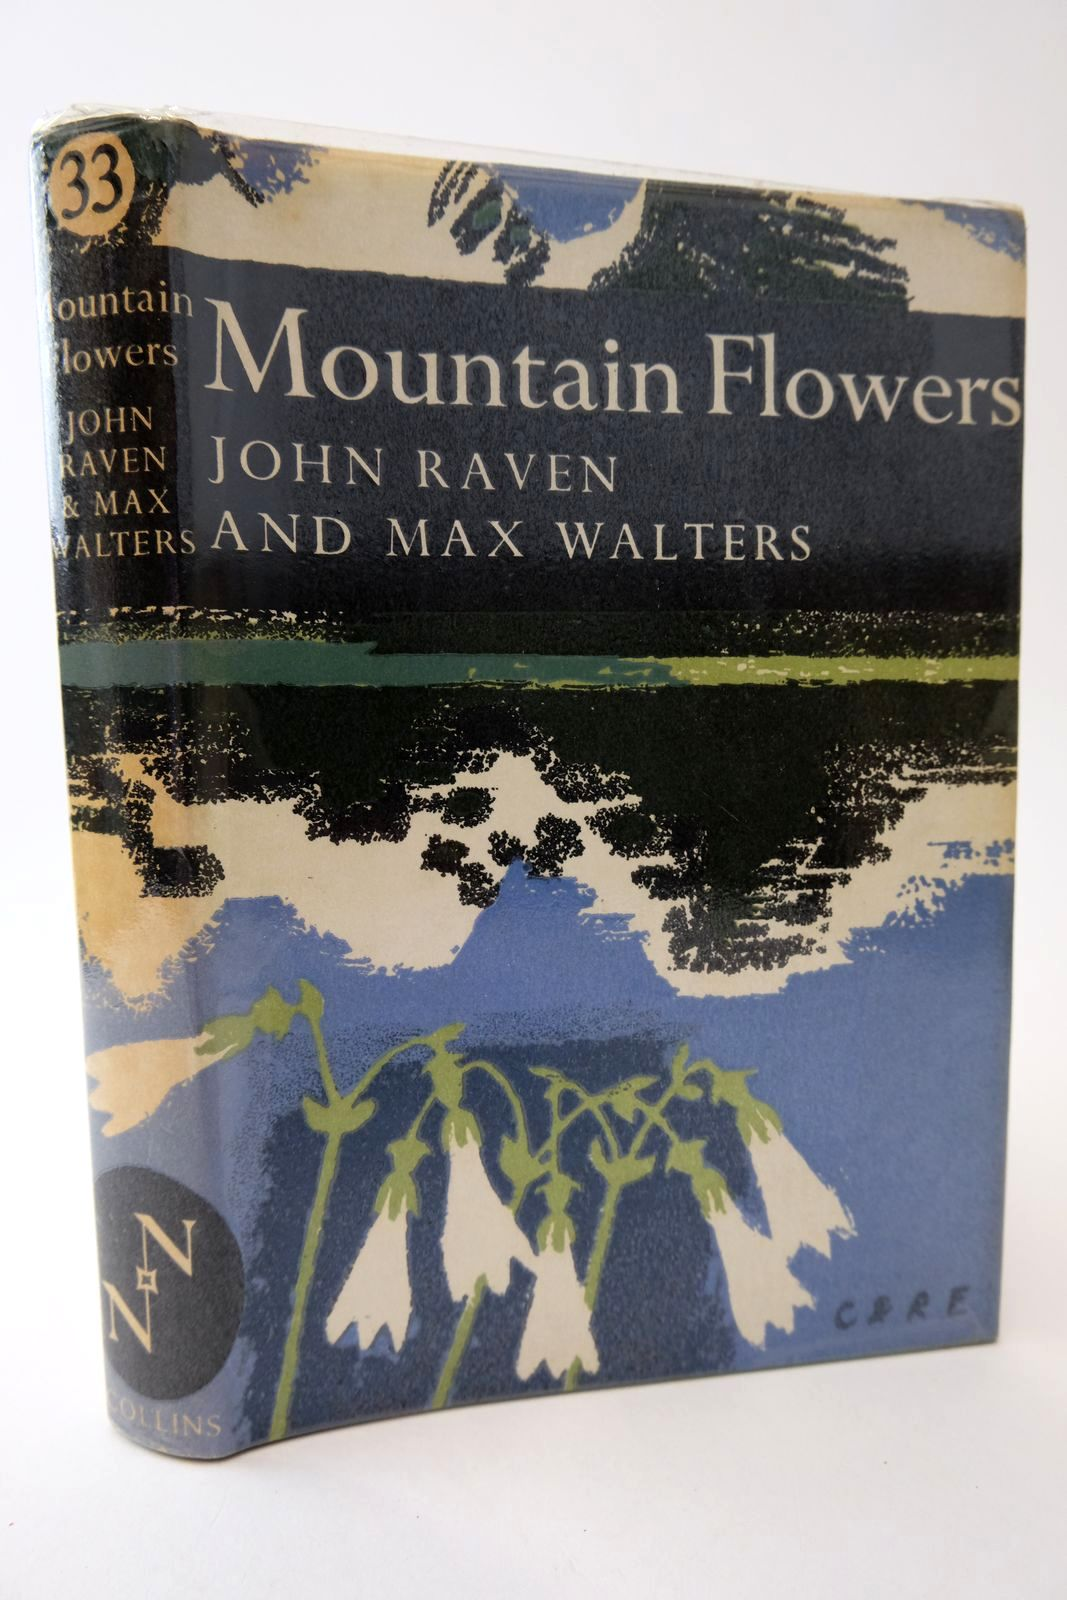 Photo of MOUNTAIN FLOWERS (NN 33) written by Raven, John Walters, Max published by Collins (STOCK CODE: 1318783)  for sale by Stella & Rose's Books